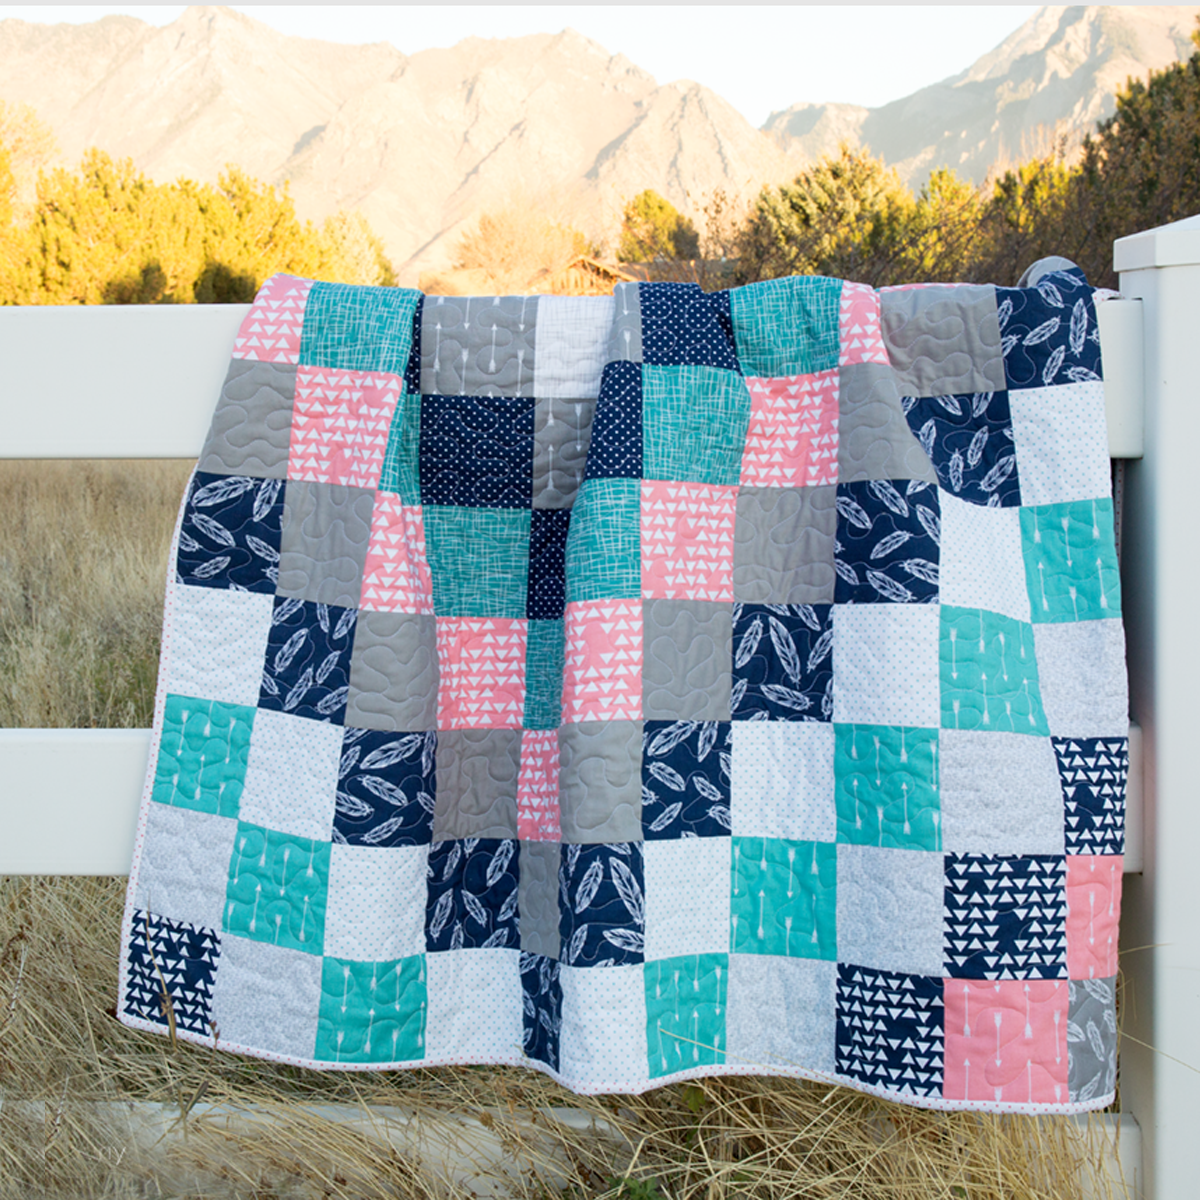 Patchwork Quilting For Beginners: 5 Baby Quilt Patterns For Beginners